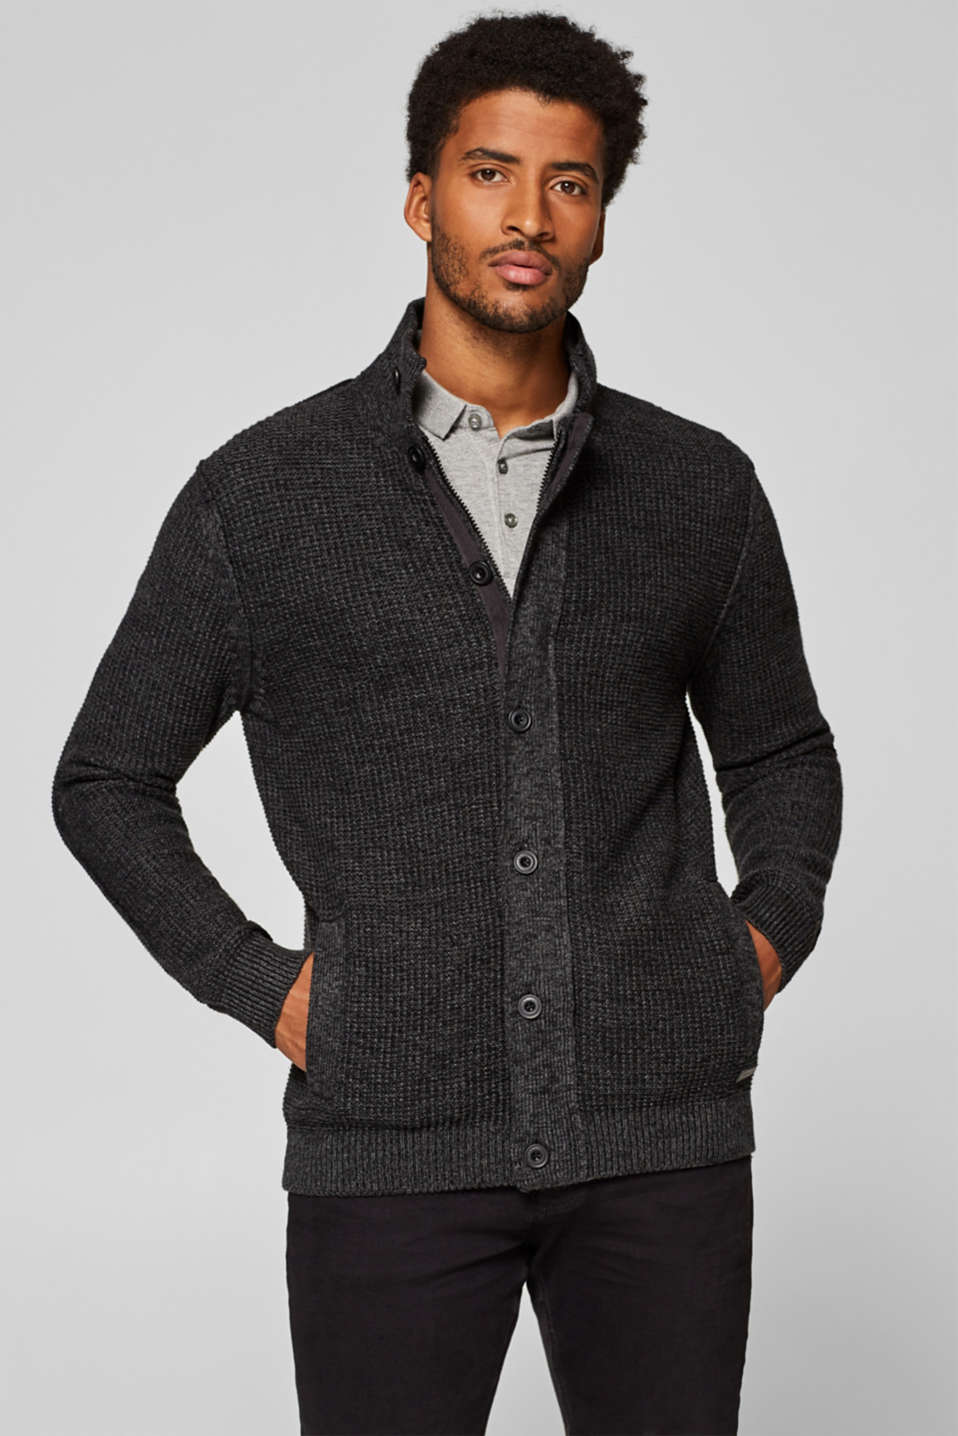 Esprit - Cardigan with a stand-up collar, 100% cotton